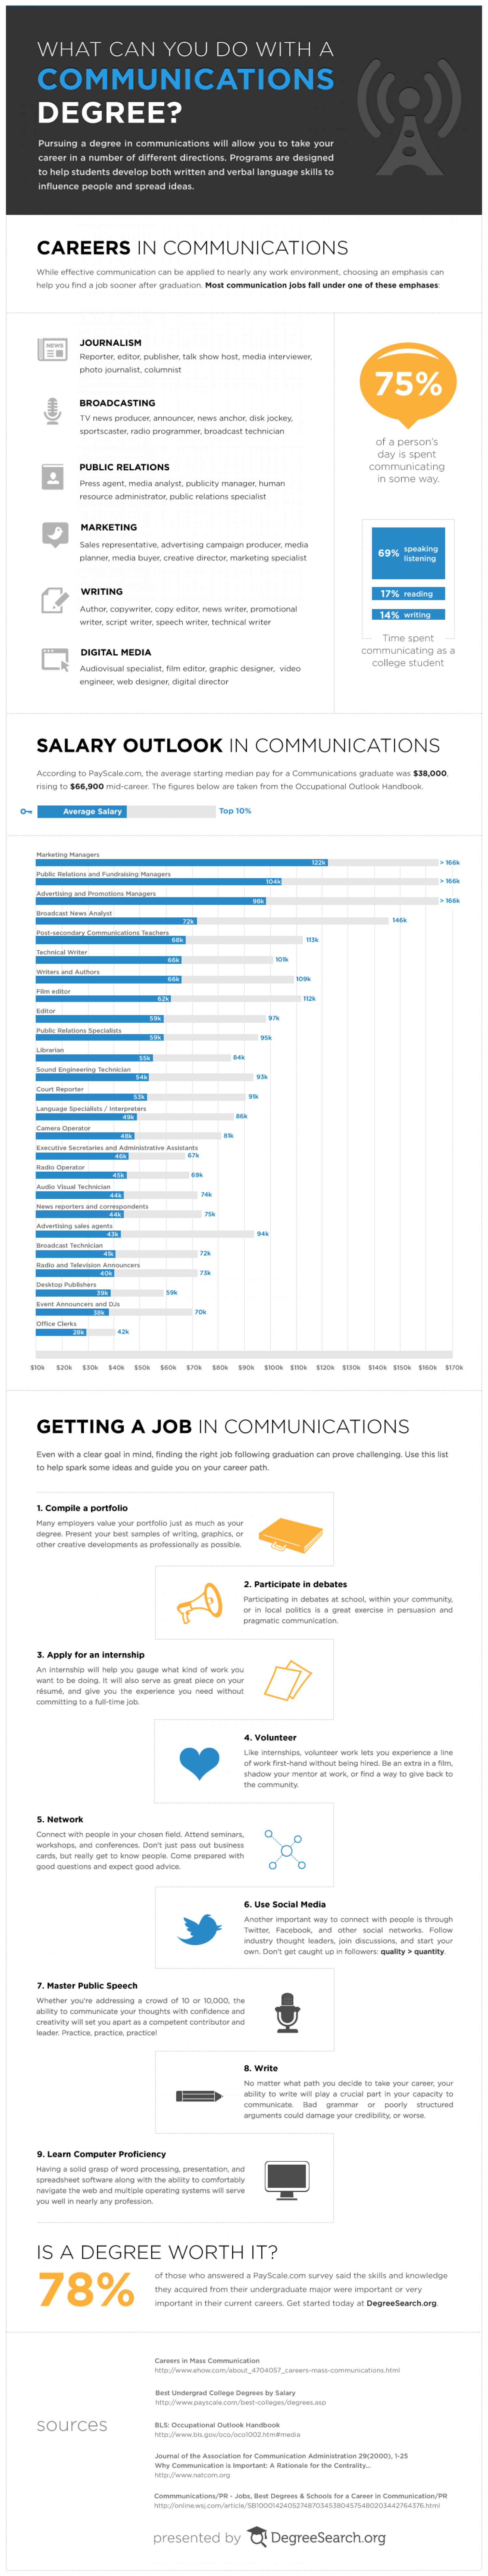 What Can You Do With A Communications Degree? Infographic